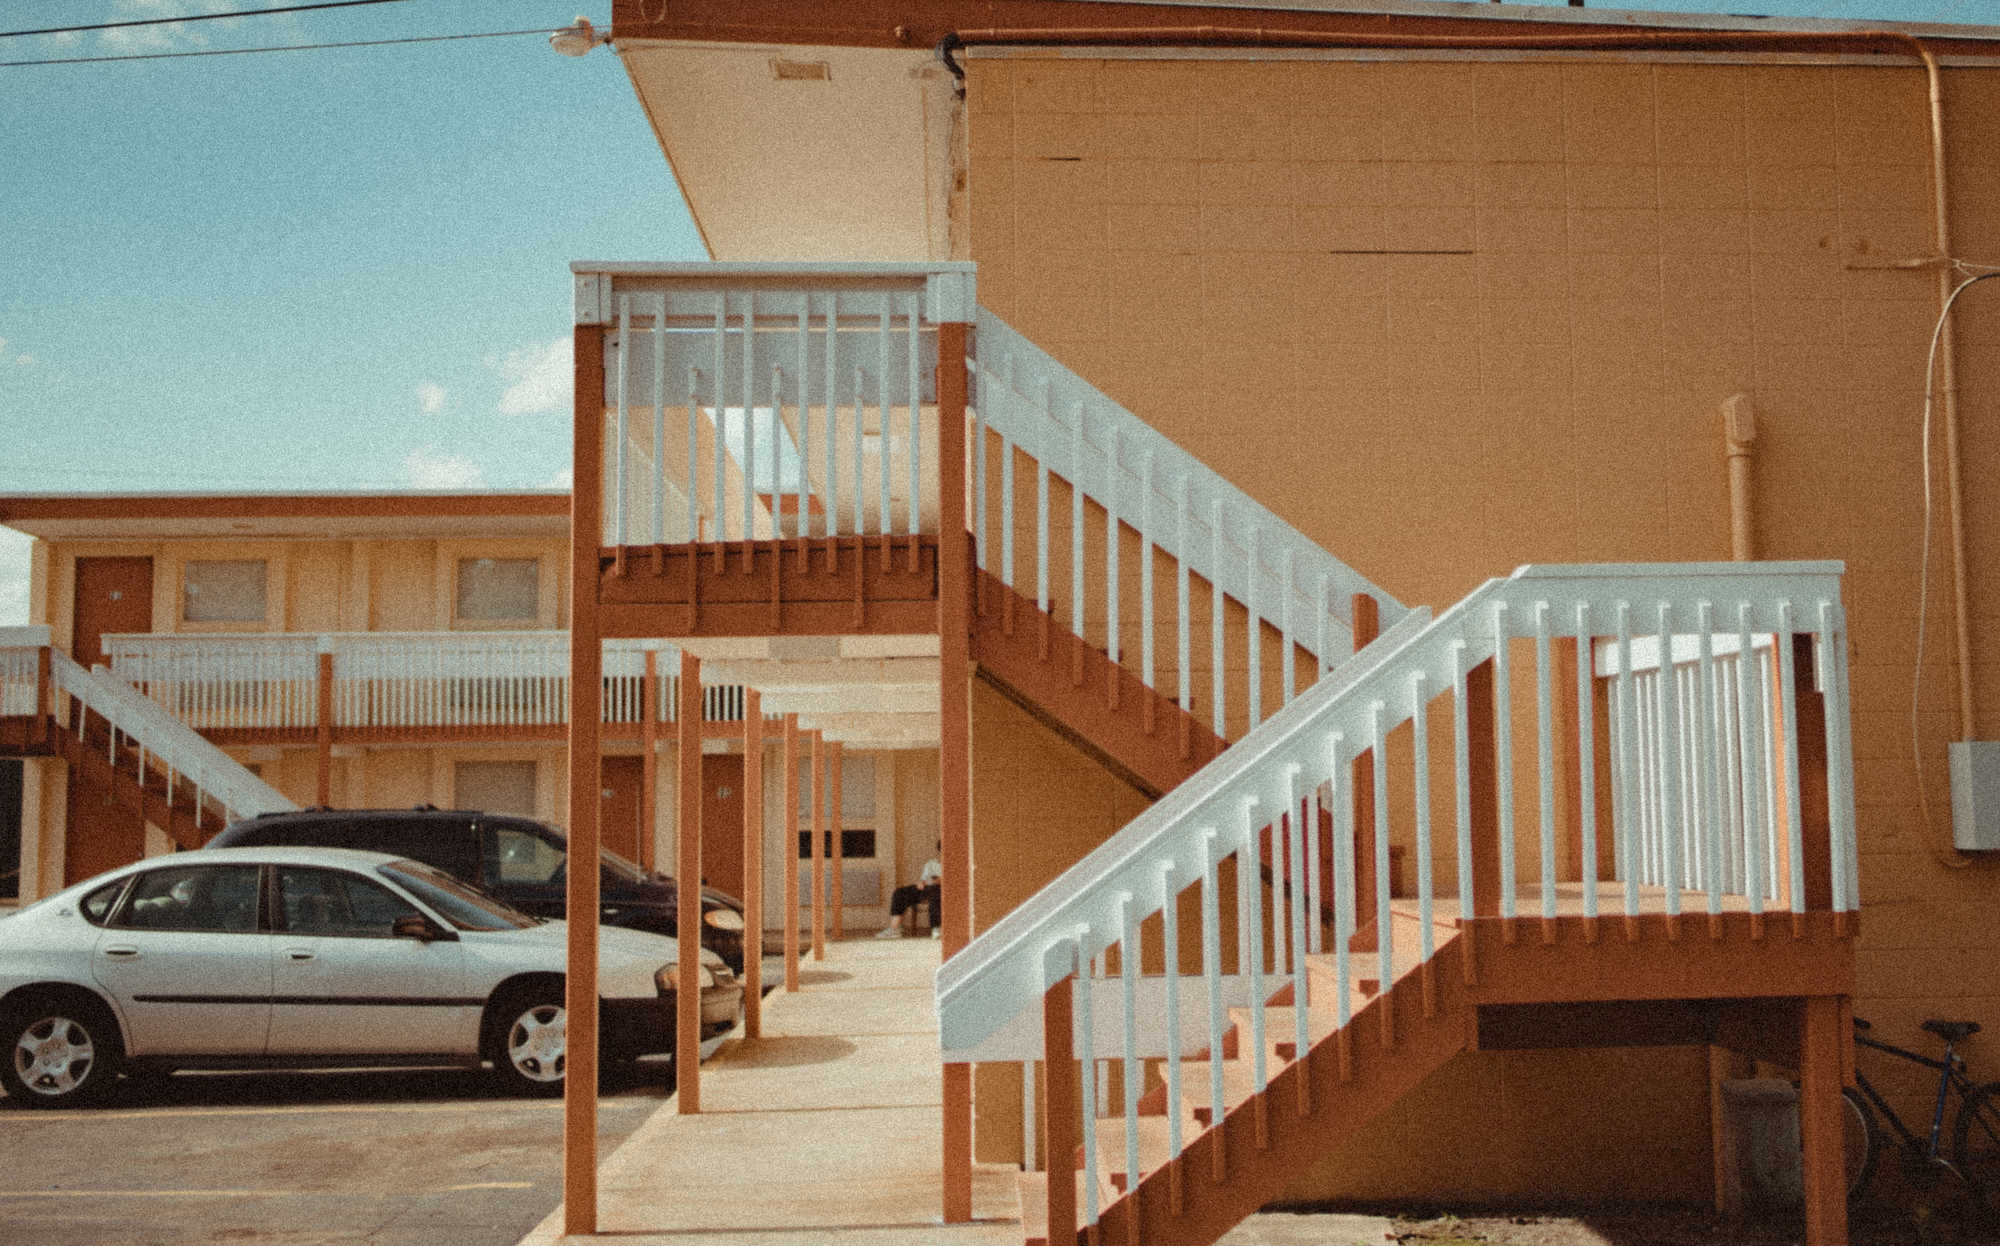 LA County motel rooms could be turned into homeless housing -